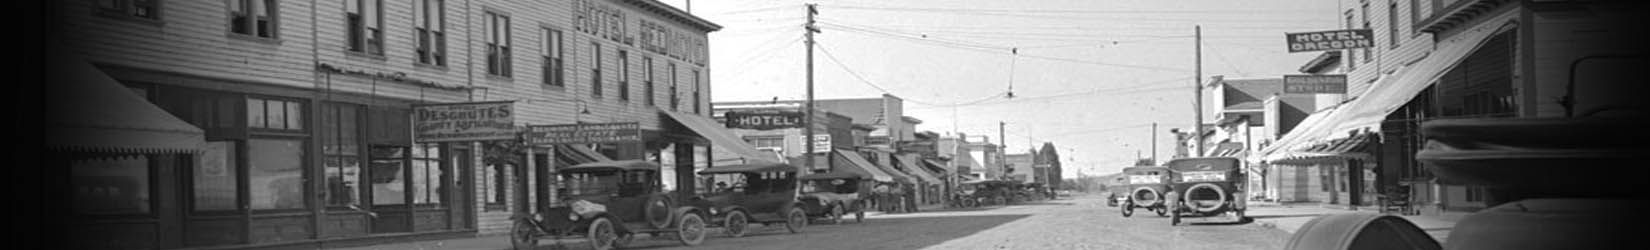 6th Street Looking North In Redmond Oregon The Hotel Before It Burned Down